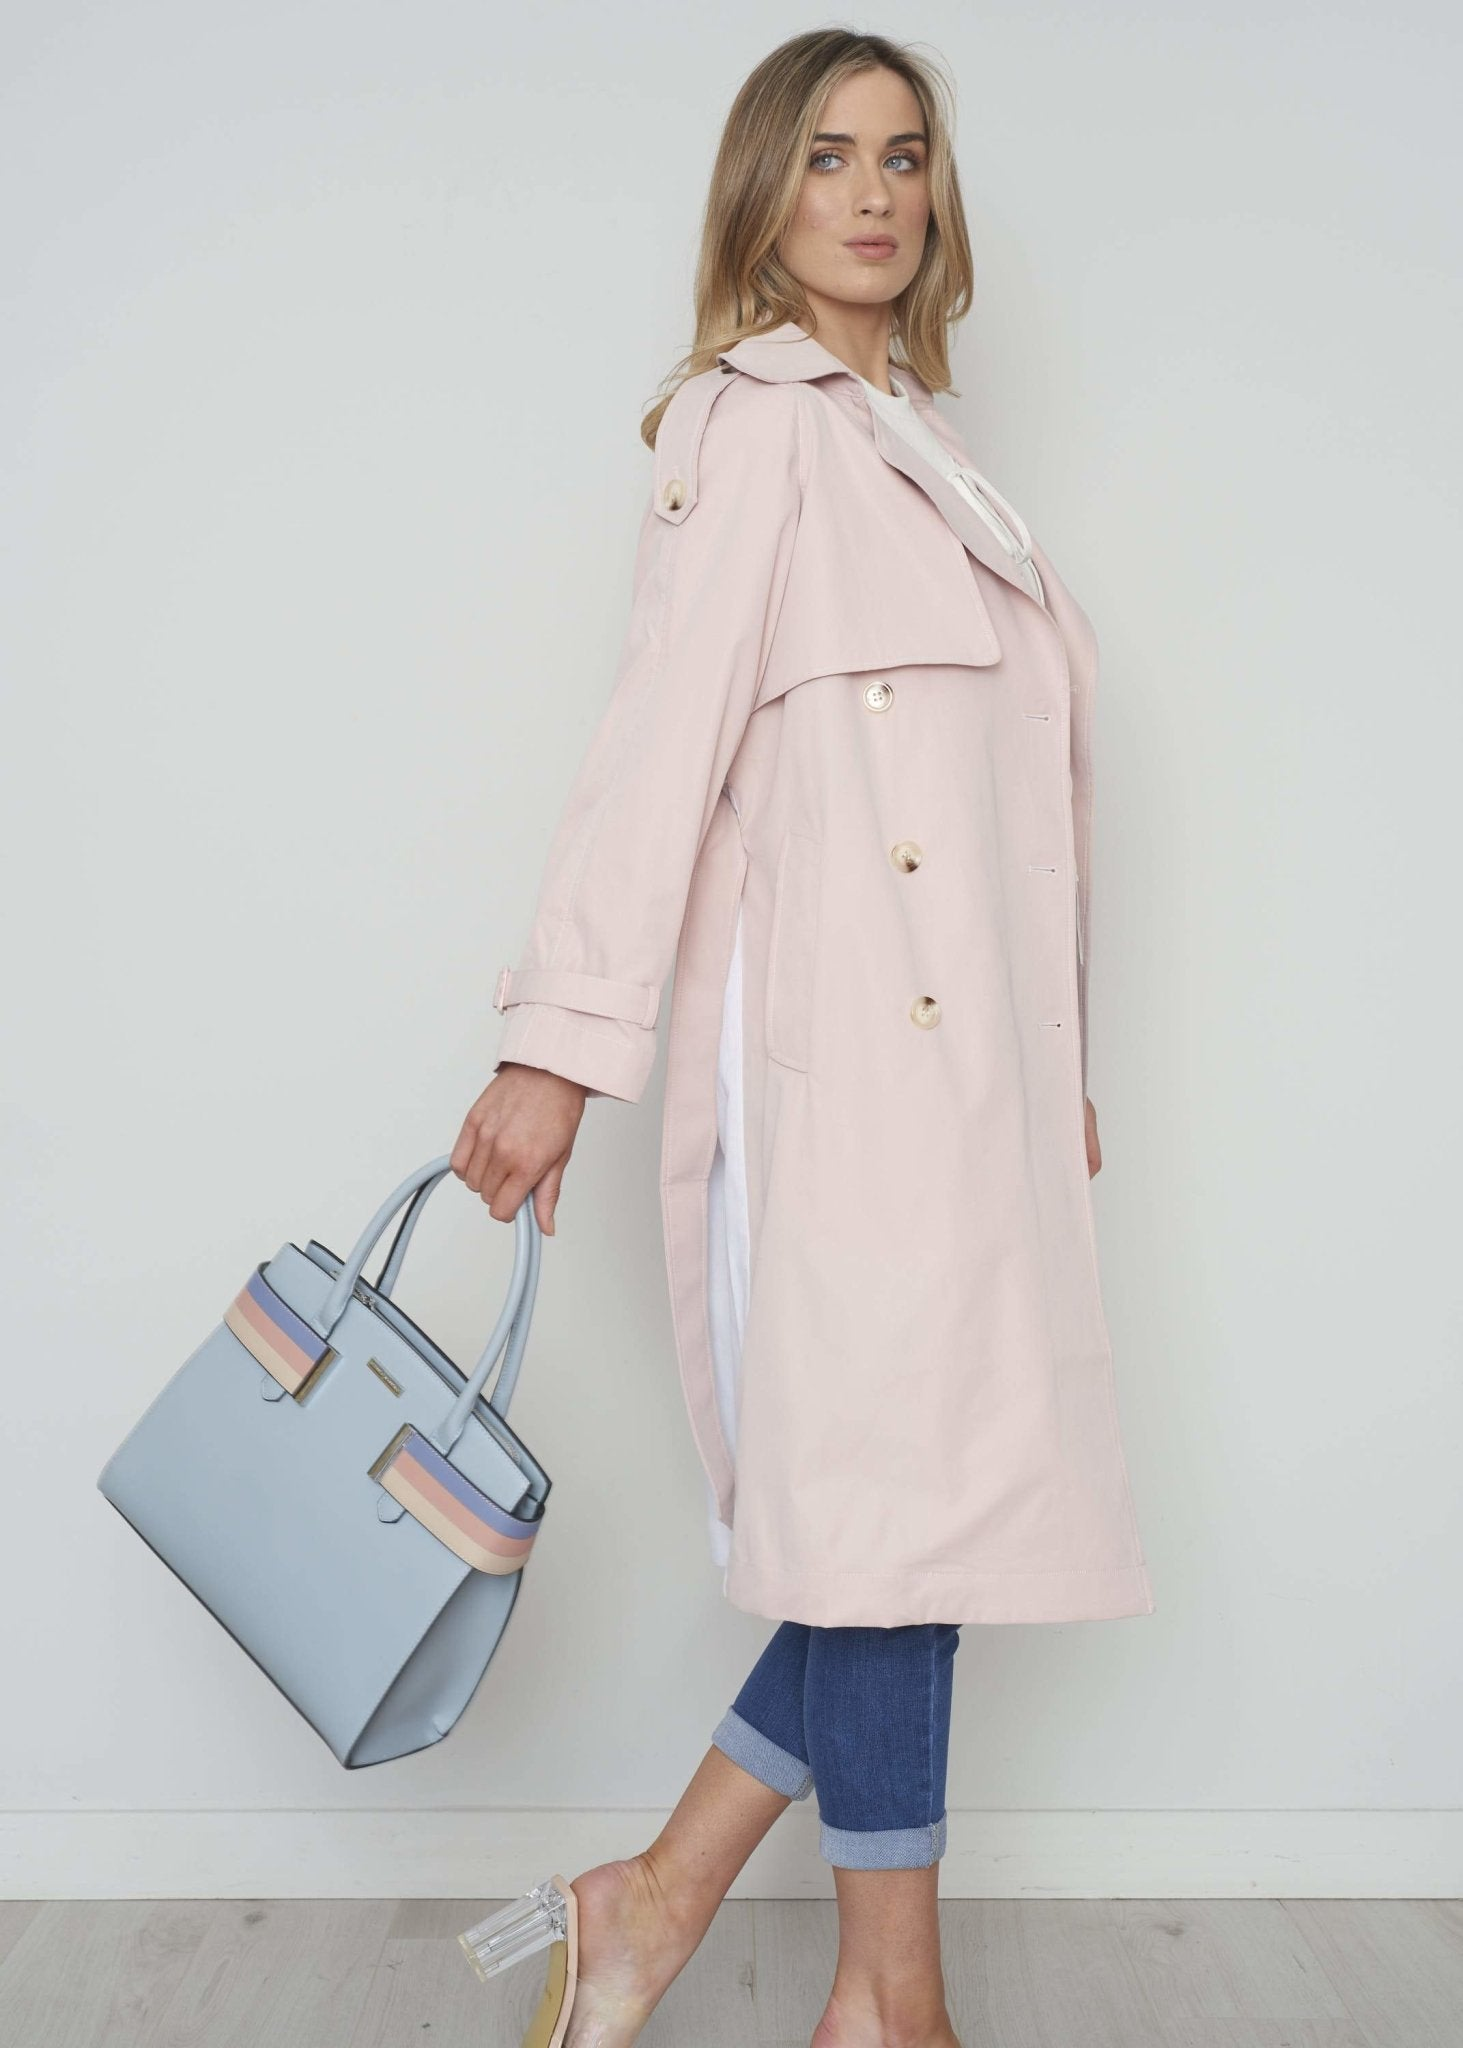 Jasmine Two Tone Trench Coat In Blush - The Walk in Wardrobe